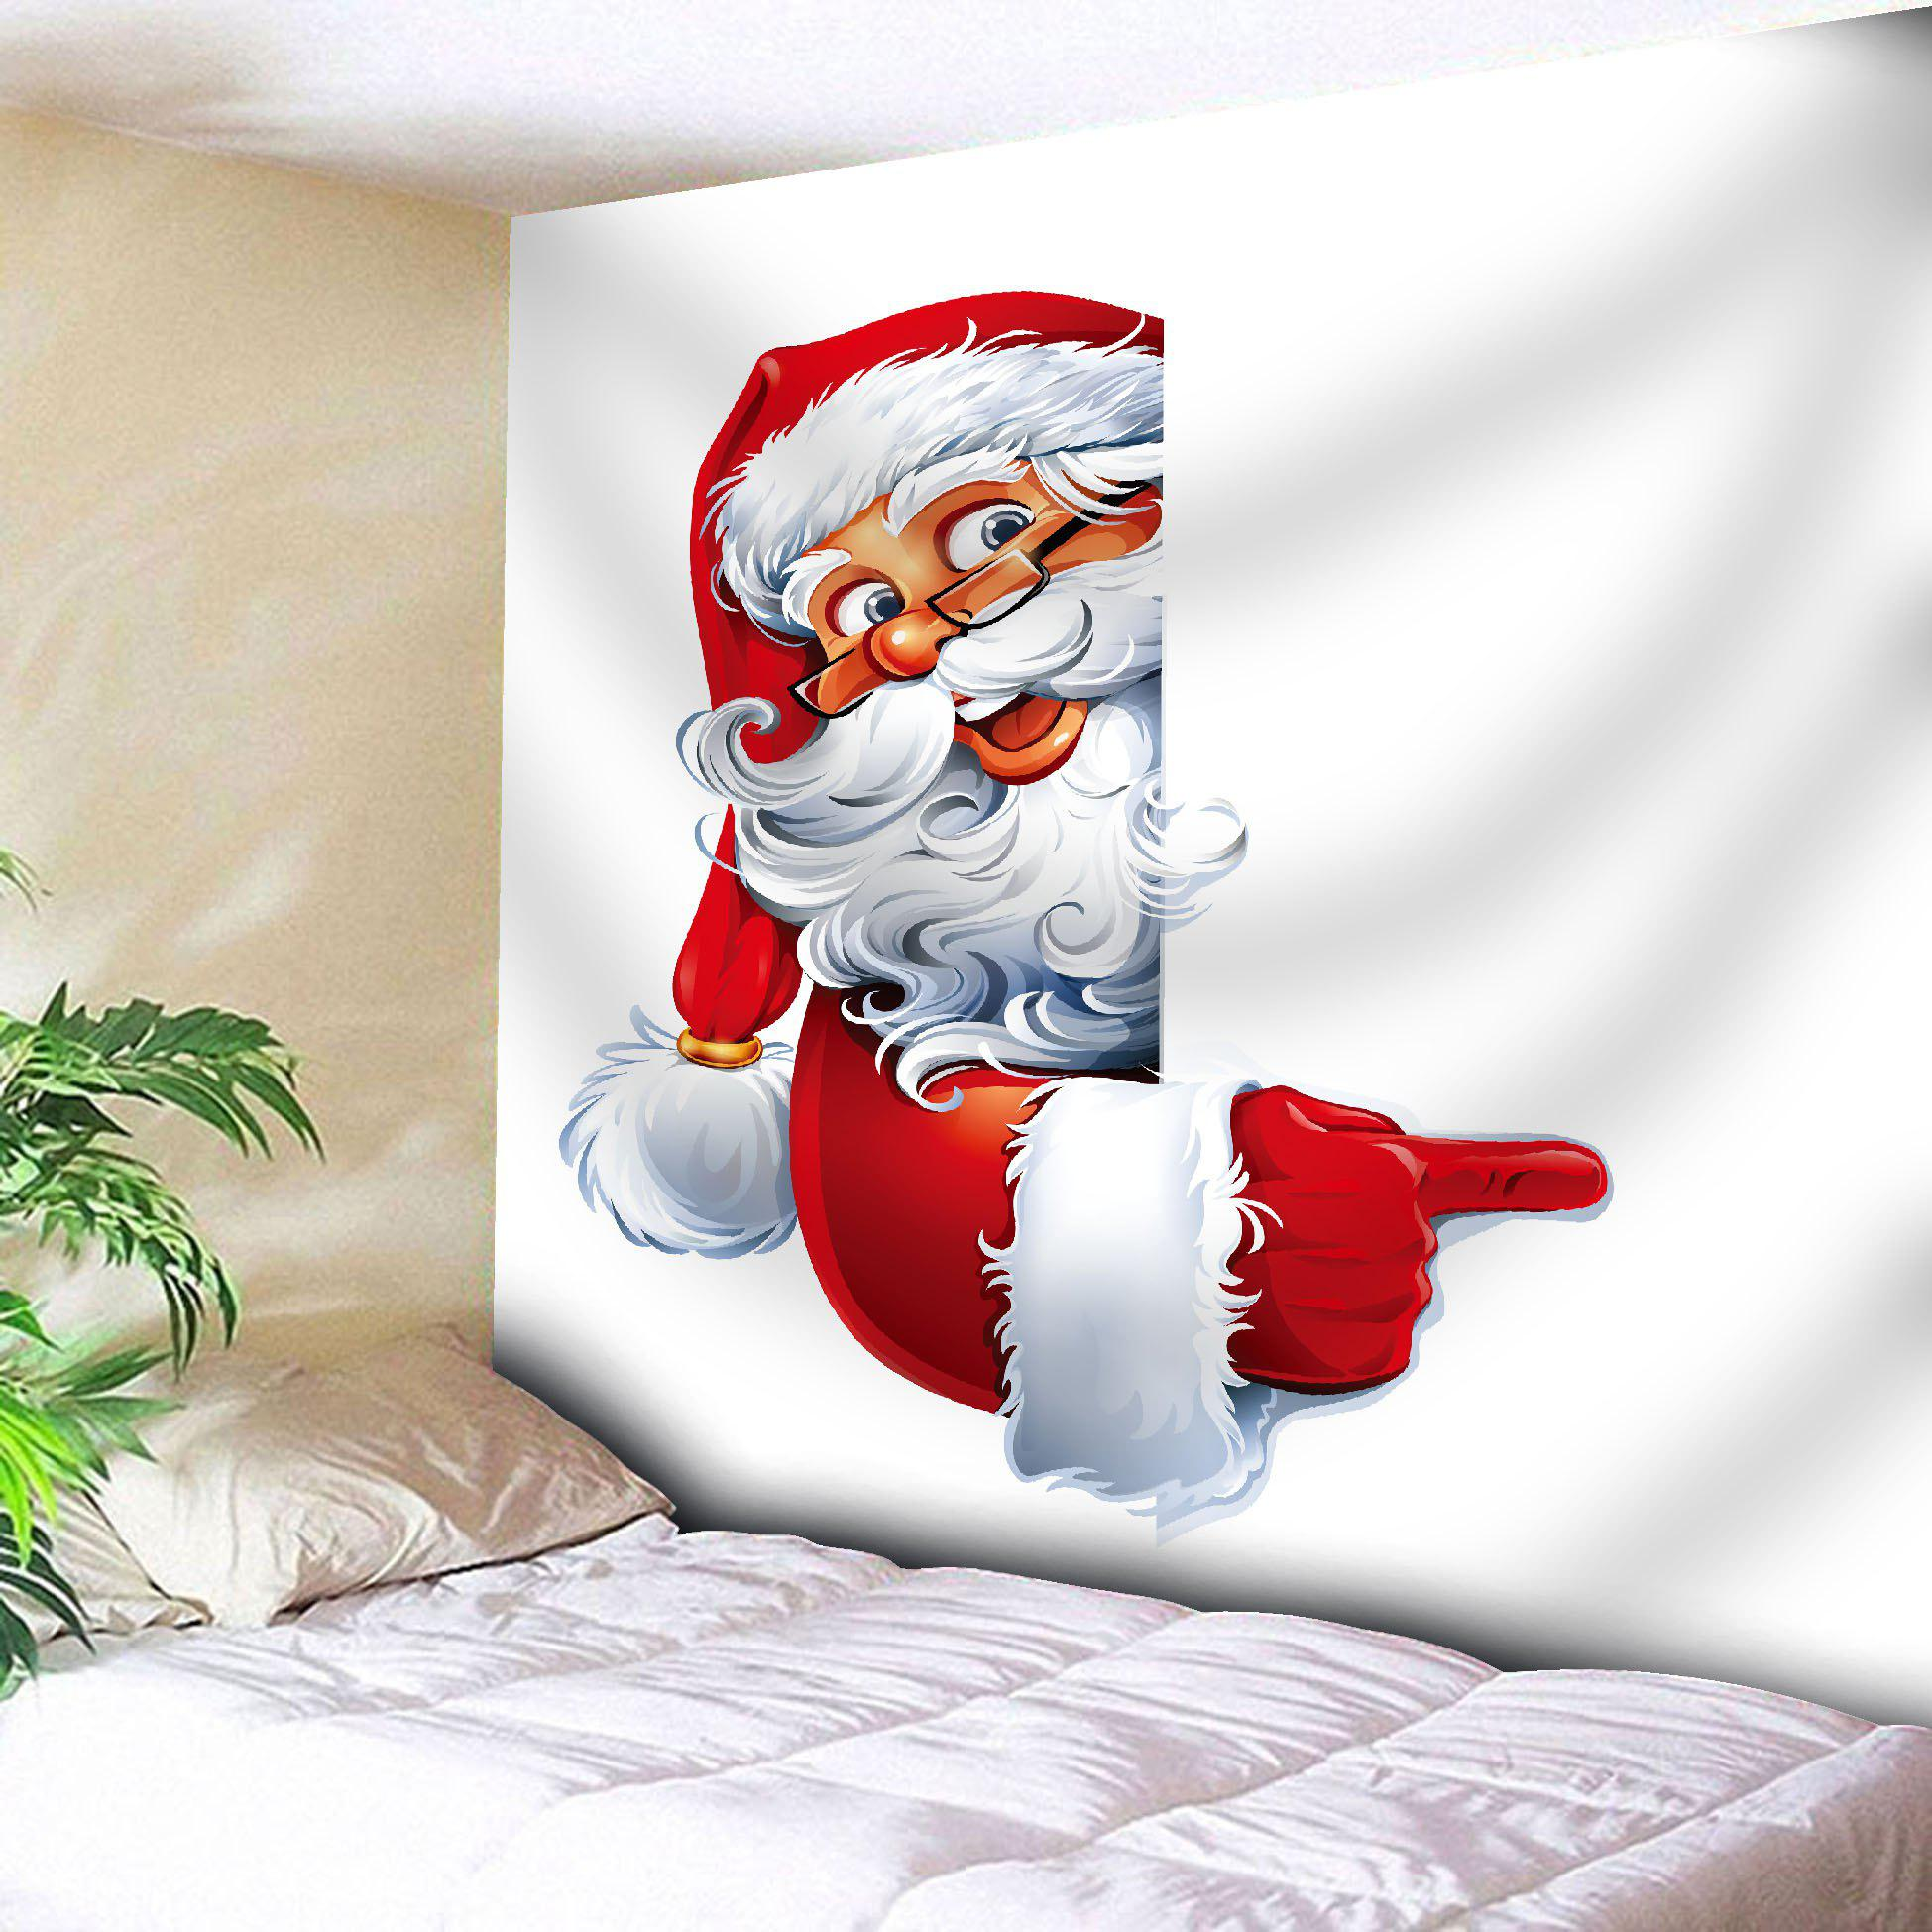 Santa Claus Printed Wall Art Christmas TapestryHOME<br><br>Size: W59 INCH * L59 INCH; Color: WHITE; Style: Festival; Theme: Christmas; Material: Nylon,Polyester; Feature: Removable,Washable; Shape/Pattern: Santa Claus; Weight: 0.2000kg; Package Contents: 1 x Tapestry;